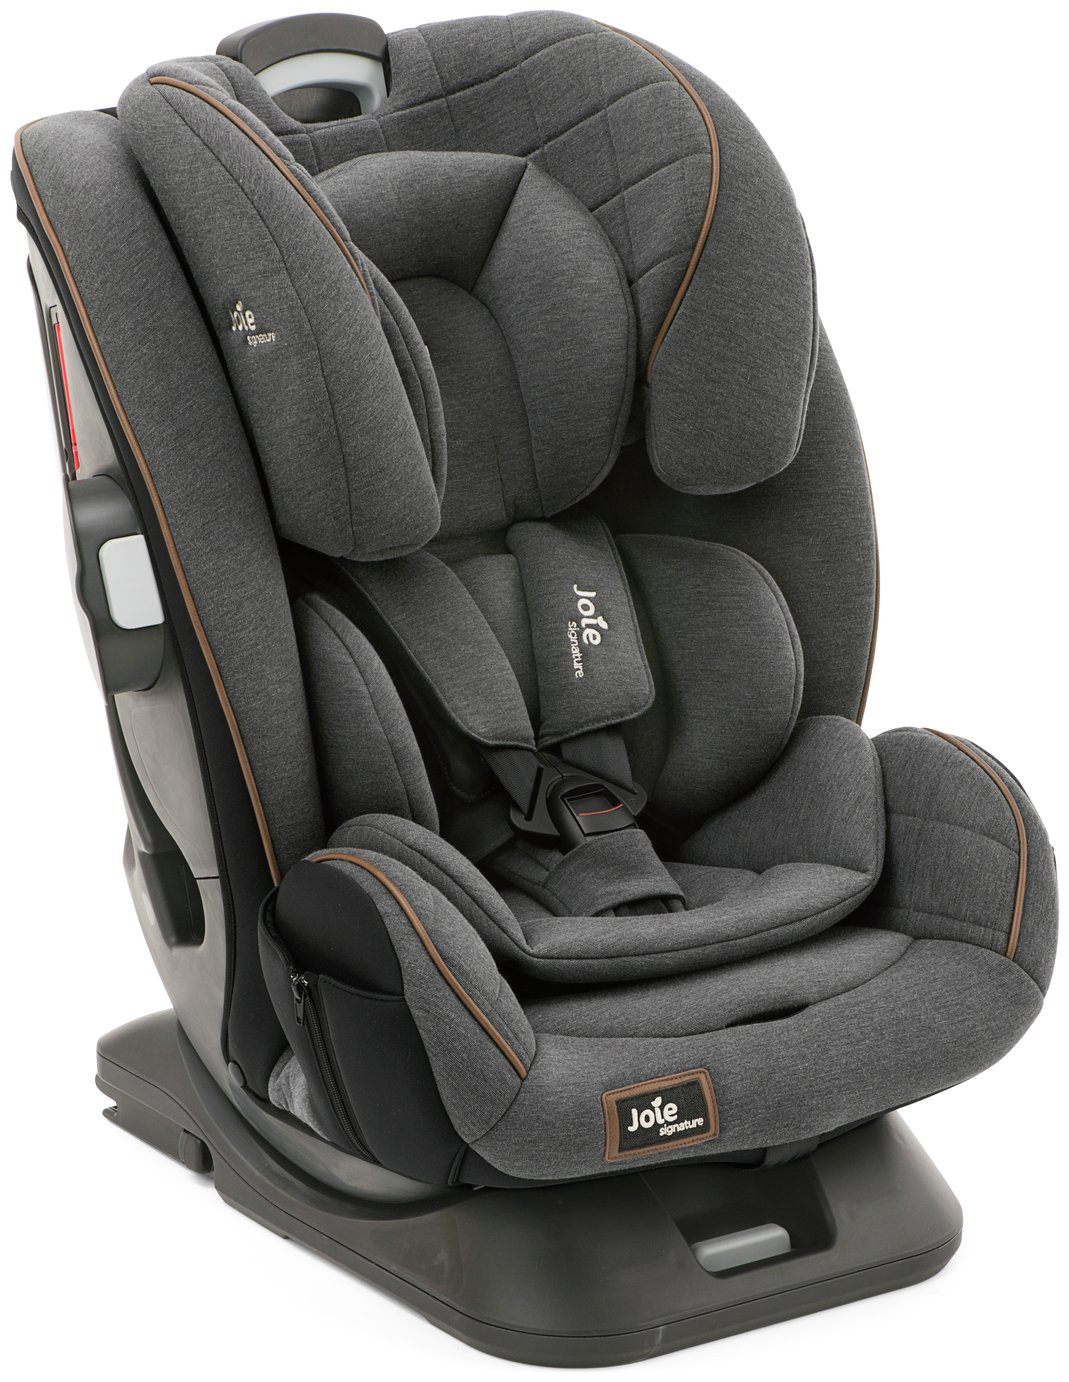 Joie Signature Every Stage FX Car Seat - Noir